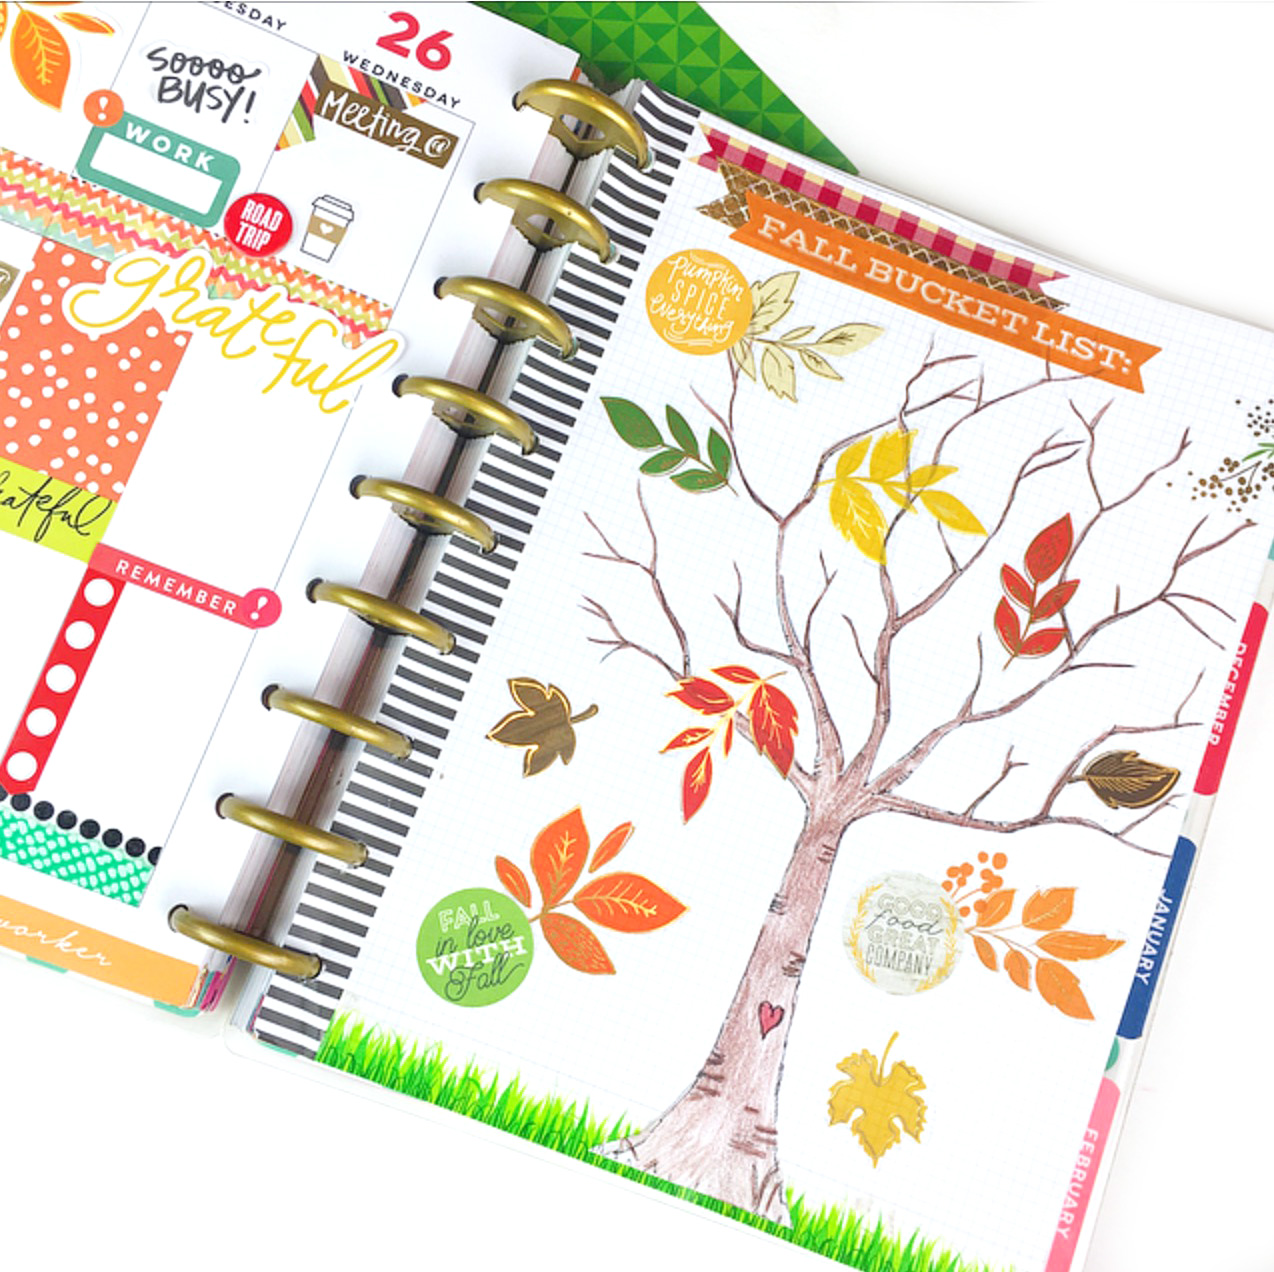 Fall themed week in the 'Be Bright' Happy Planner™ of mambi Design Team member Nita Patterson w/ Fall Bucket List Tree | me & my BIG ideas